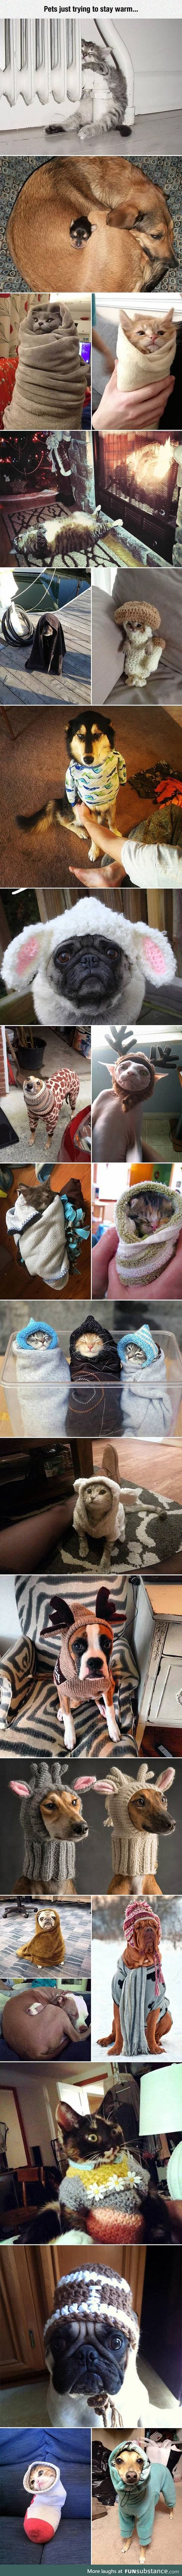 They look really cozy